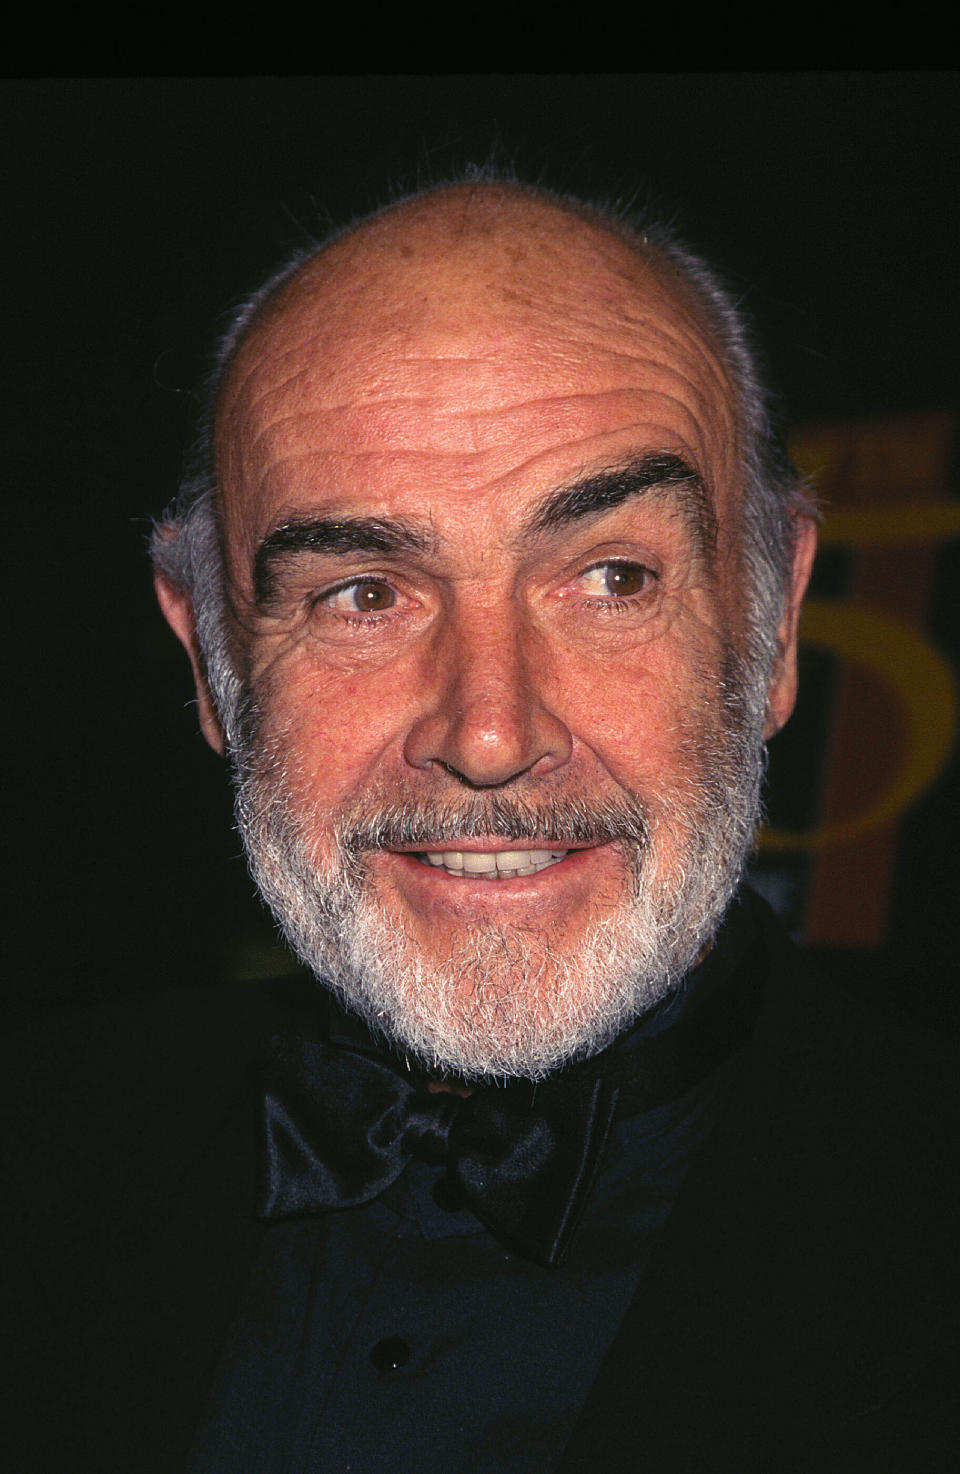 Photo by: STRF/STAR MAX/IPx 2020 10/31/20 Sean Connery, who played James Bond, has passed away at age 90. STAR MAX File Photo: Sean Connery circa 1998